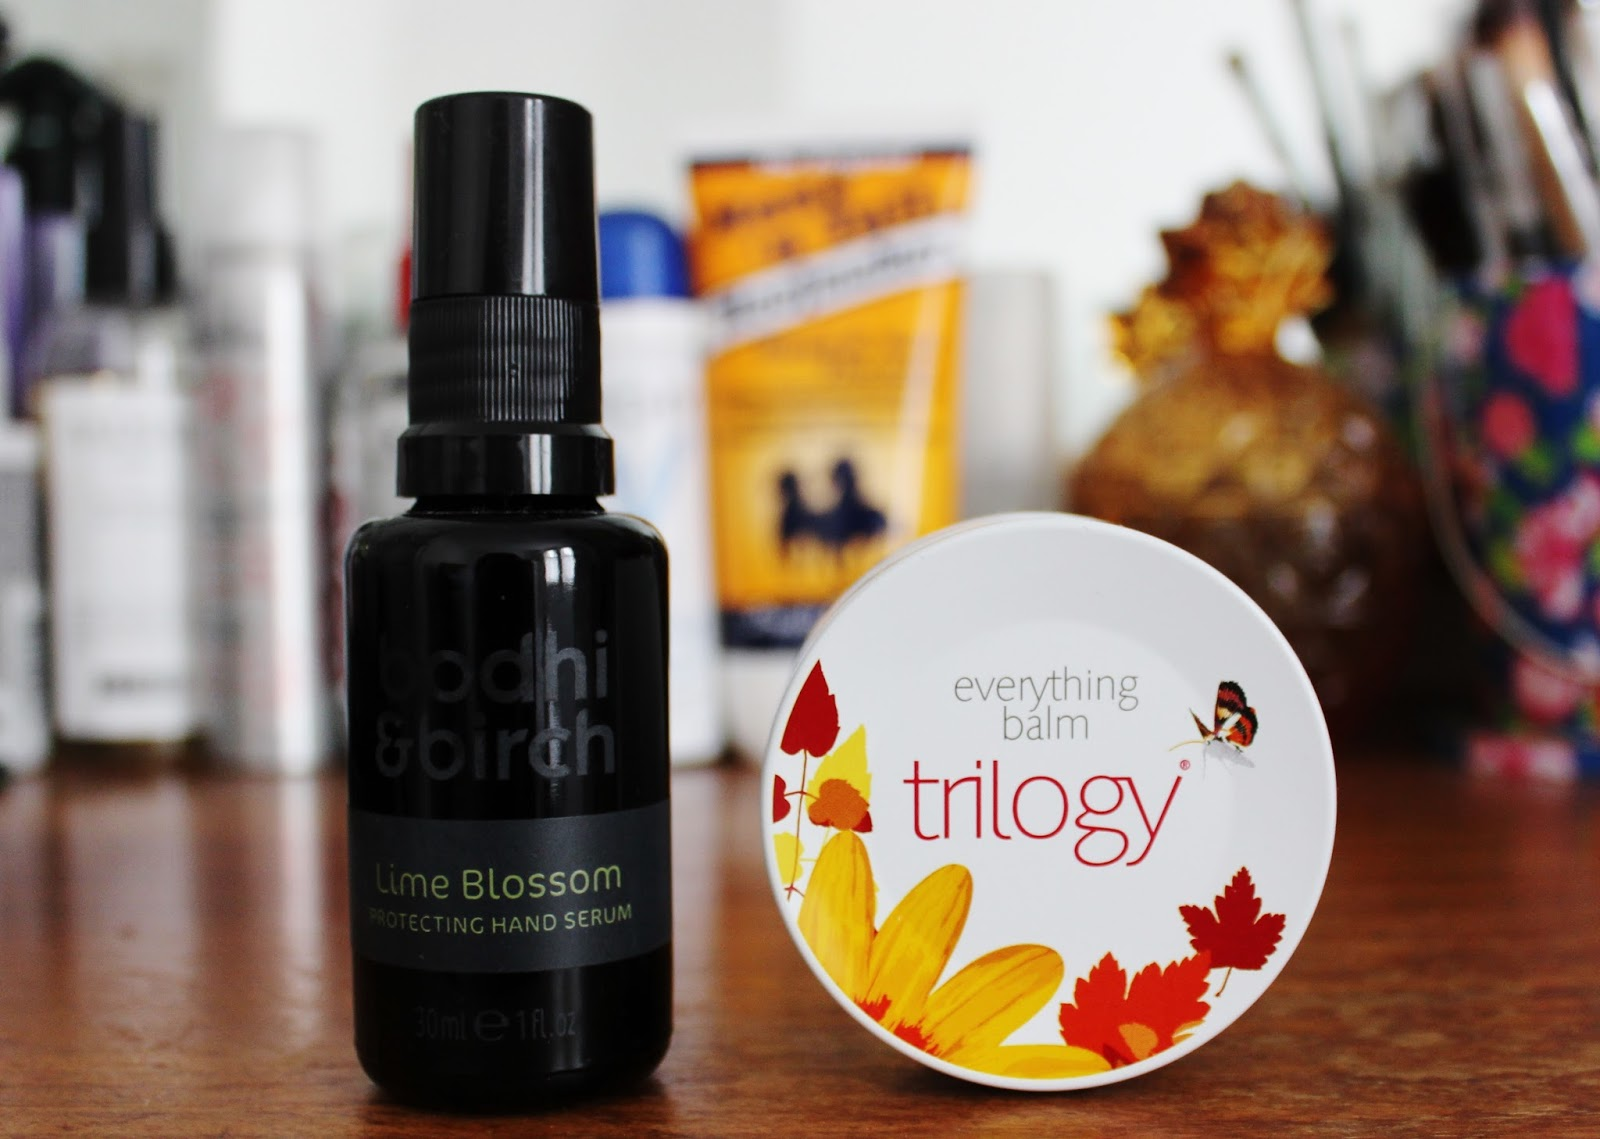 Bodhi & Brich lime blossom hand serum and Trilogy Everything Balm